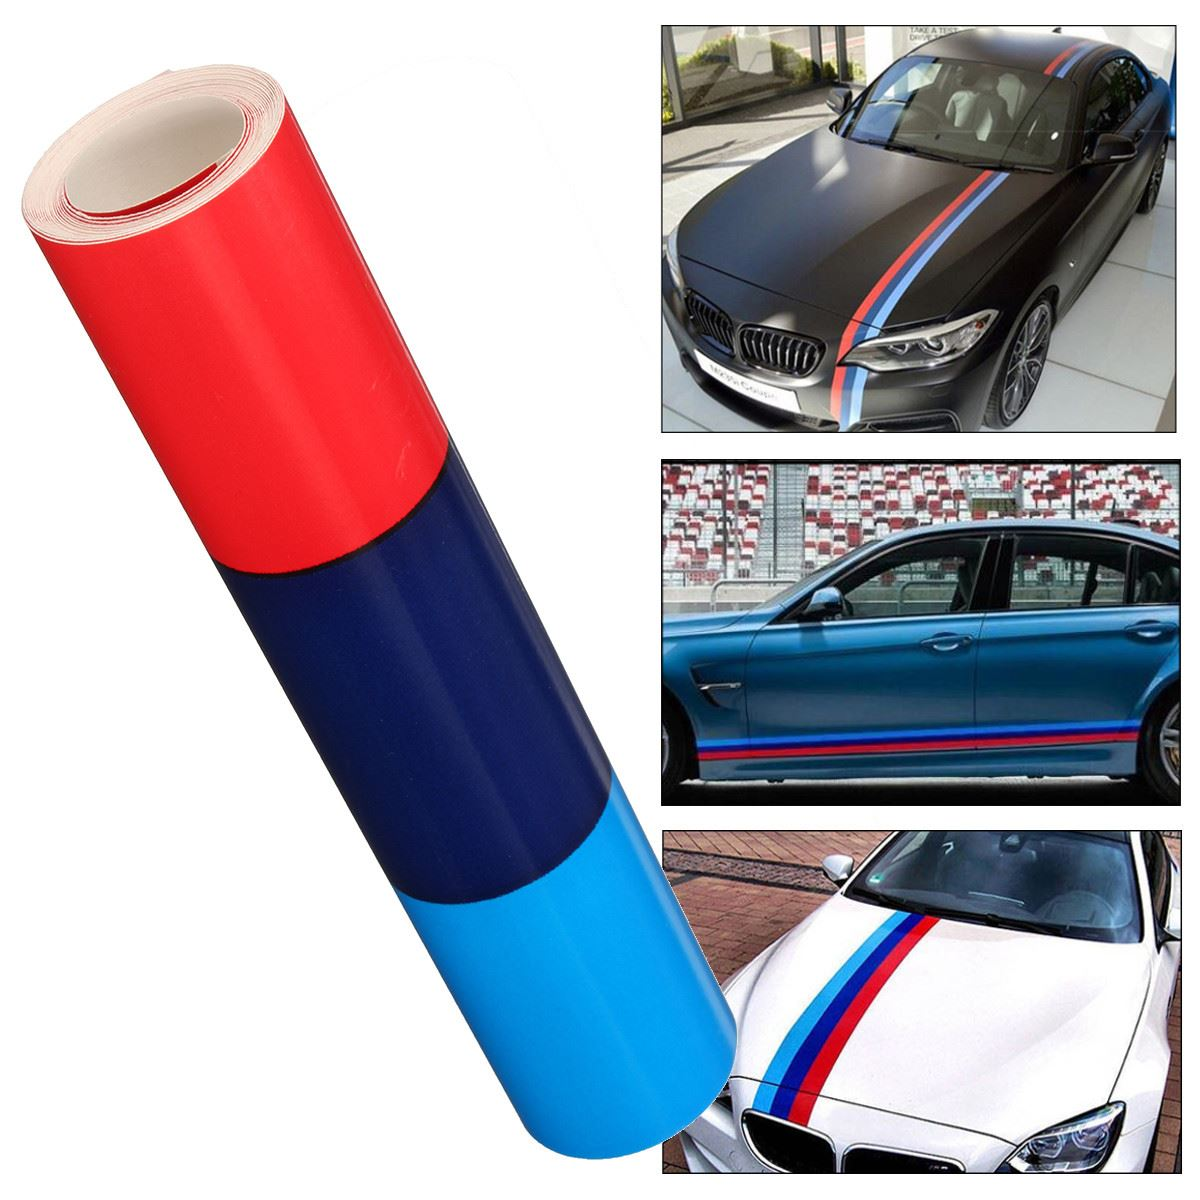 1.5m M Color Stripes Rally Side Hood Racing Motorsport Vinyl Decal Sticker Strip Bumper Engine Cover For BMW(China)